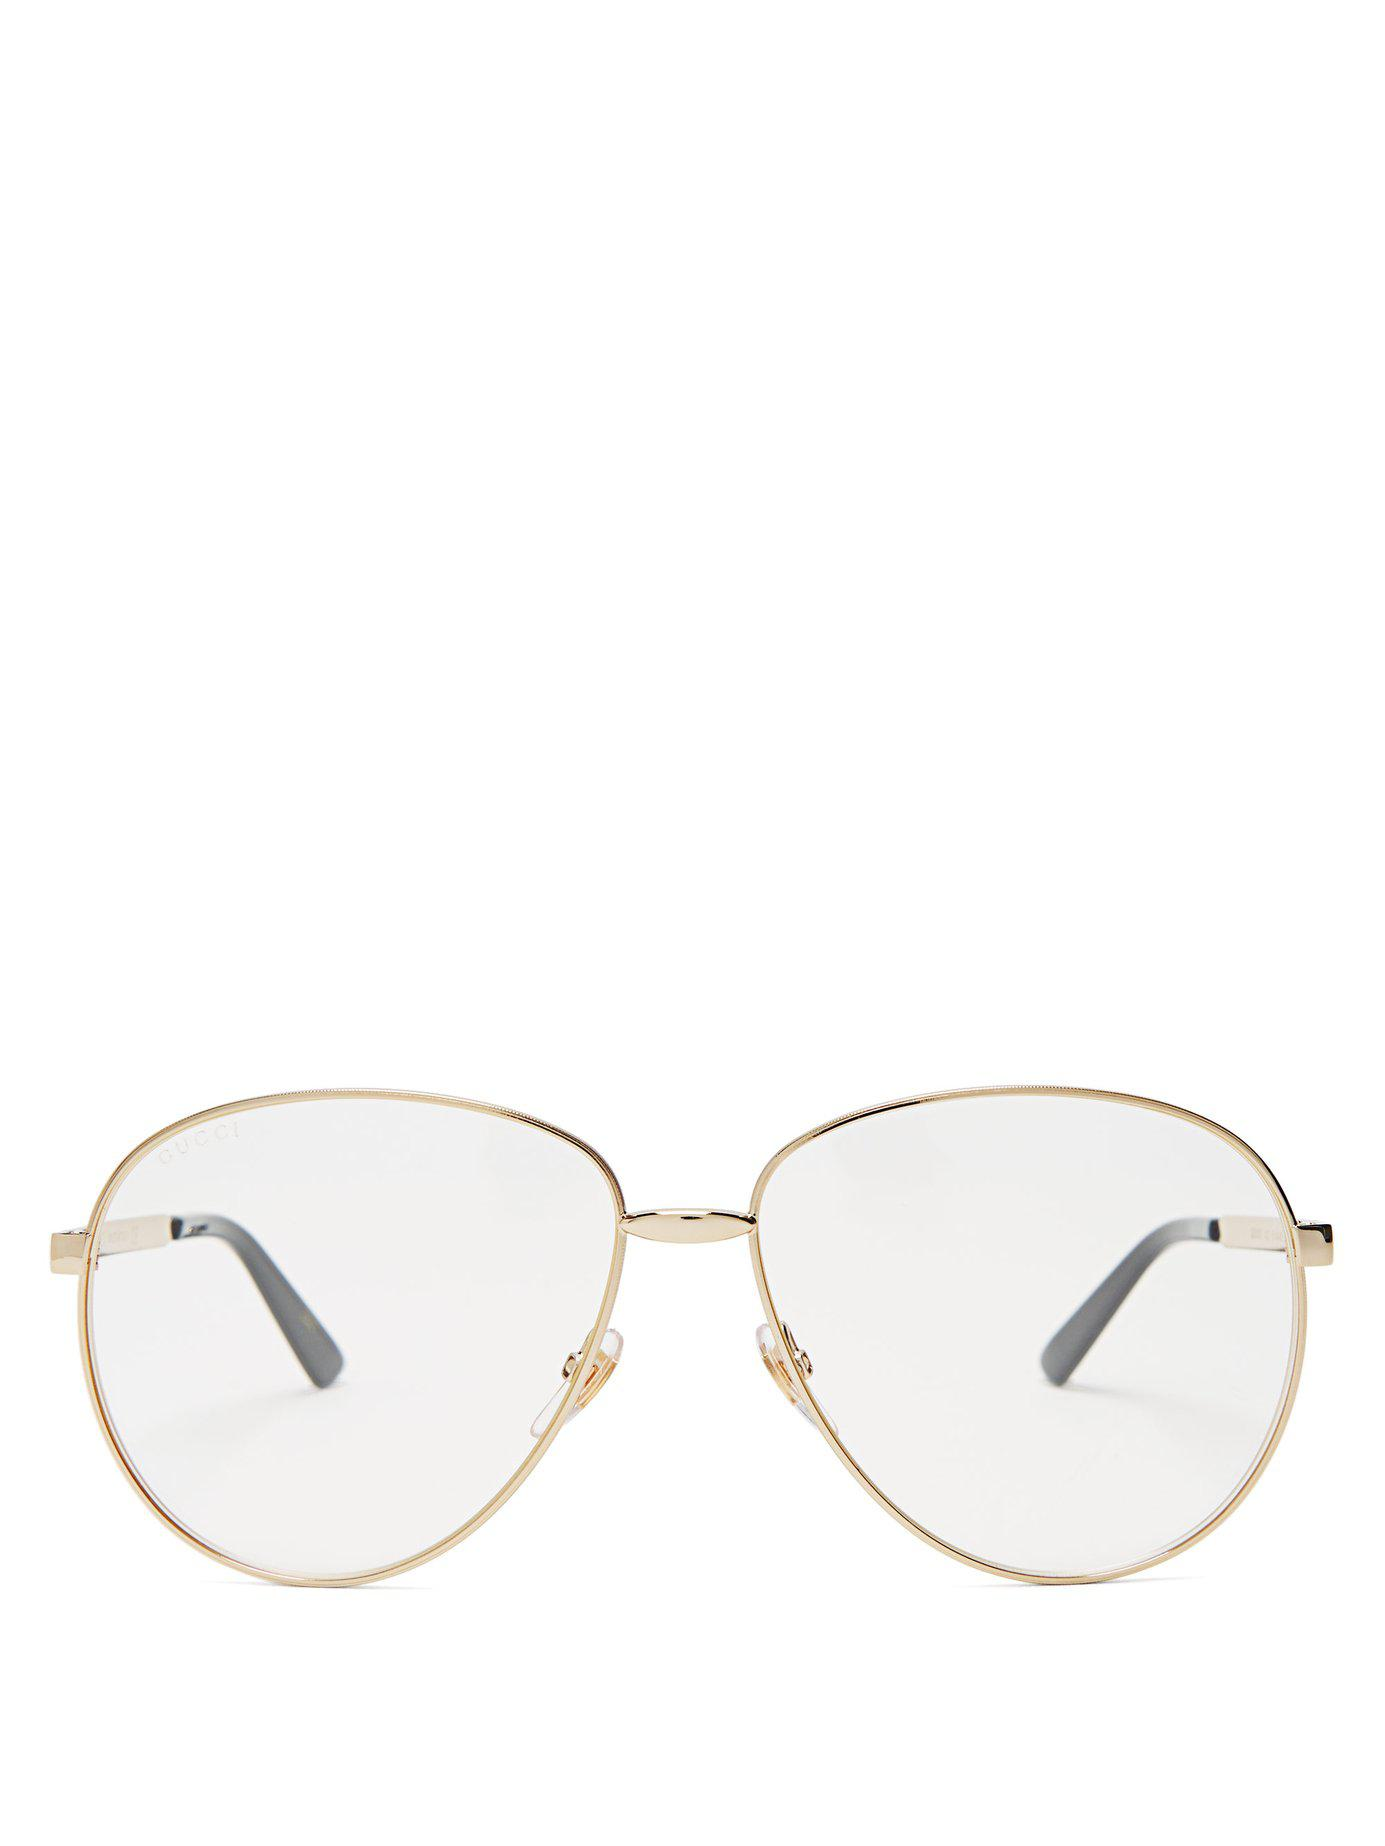 5f6214613e5 Lyst - Gucci Aviator Frame Glasses in Metallic for Men - Save 7%